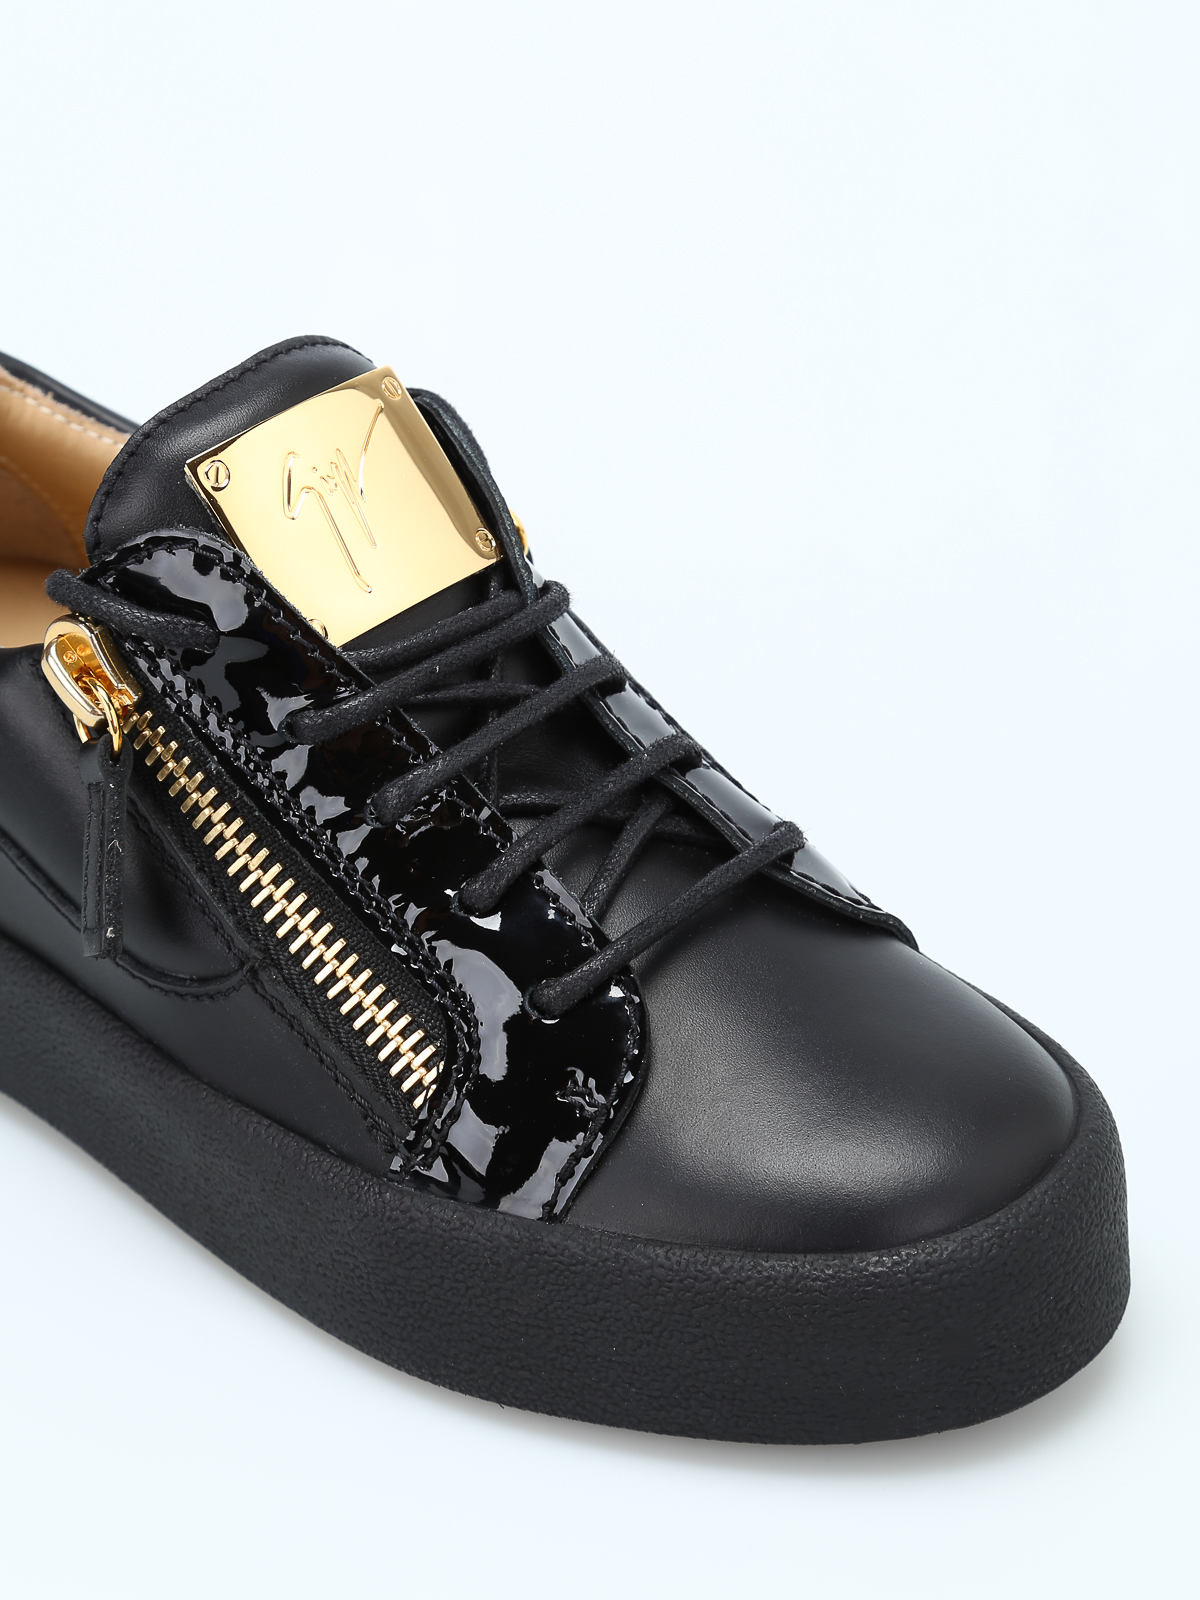 Giuseppe Zanotti May London Low Top Sneakers Trainers